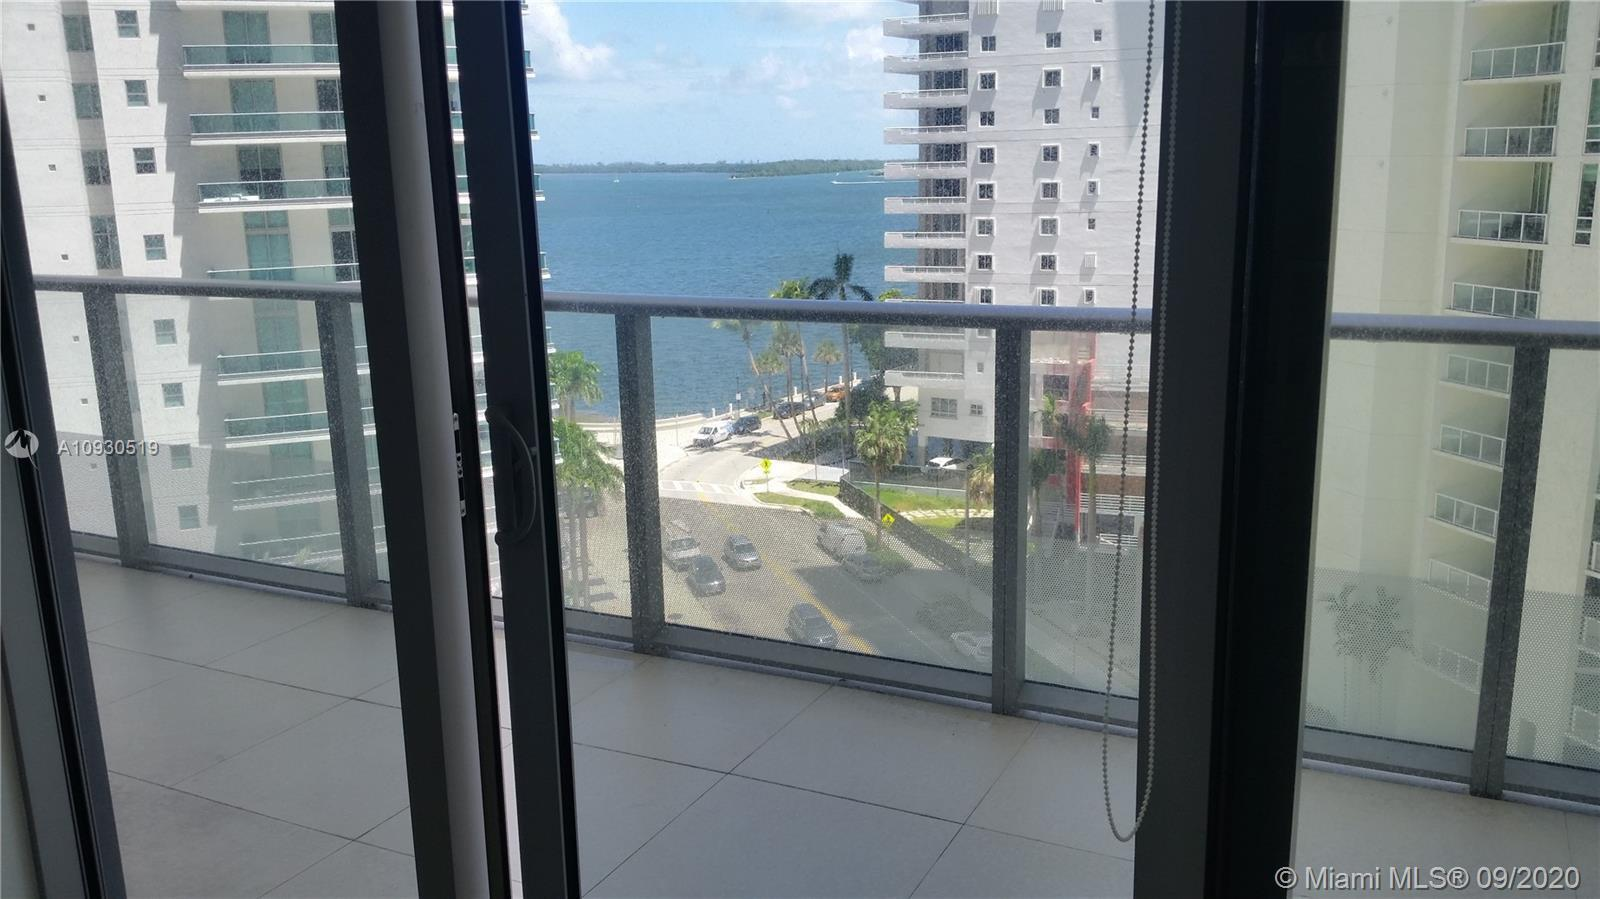 BRICKELL HOUSE is an amazing building with full 5 STAR amenities, such as an expansive 46th floor a